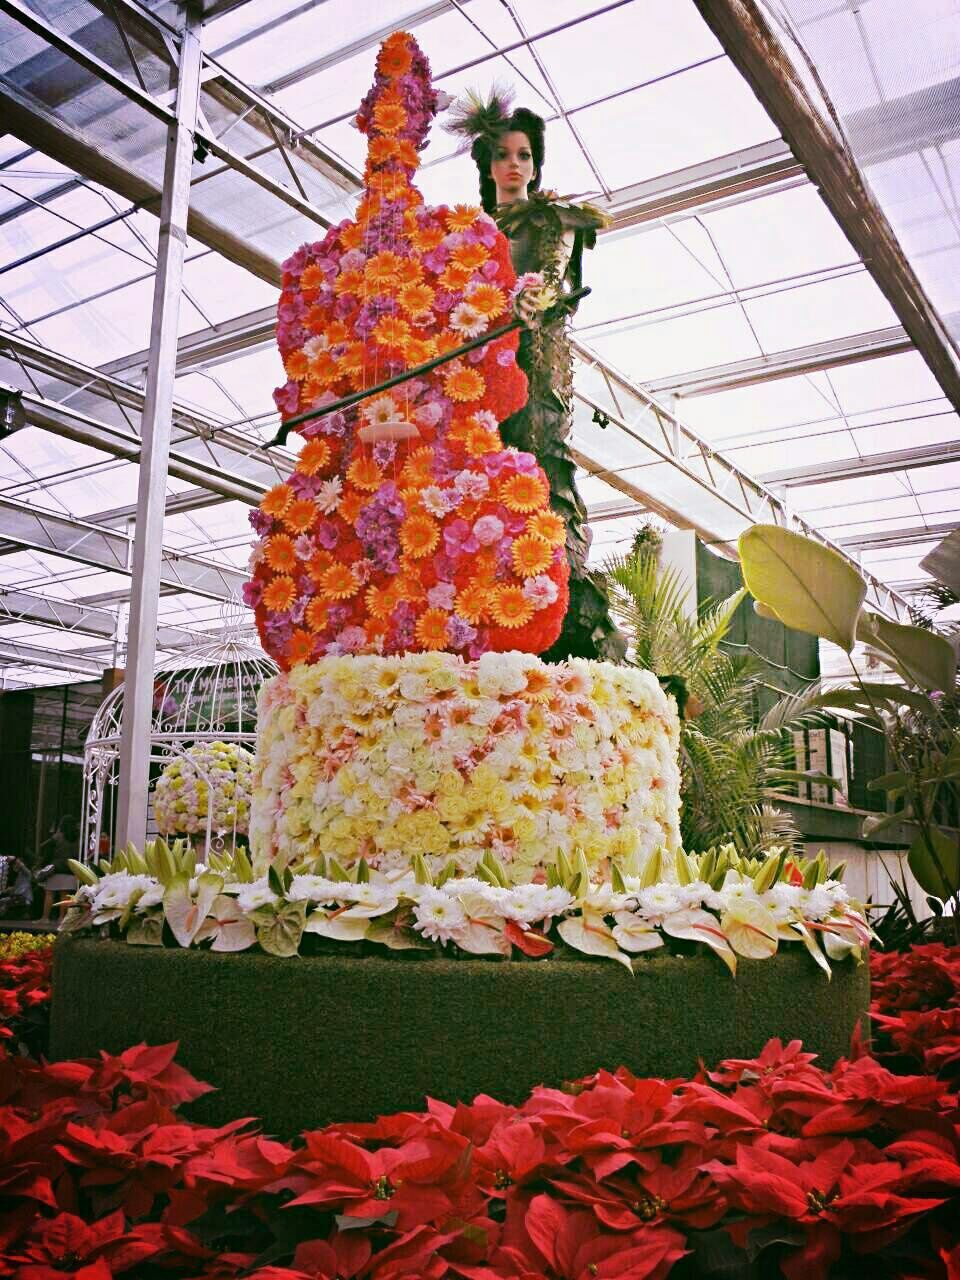 flower, wedding, freshness, celebration, food and drink, wedding cake, bride, life events, food, indoors, men, day, women, bridegroom, greenhouse, people